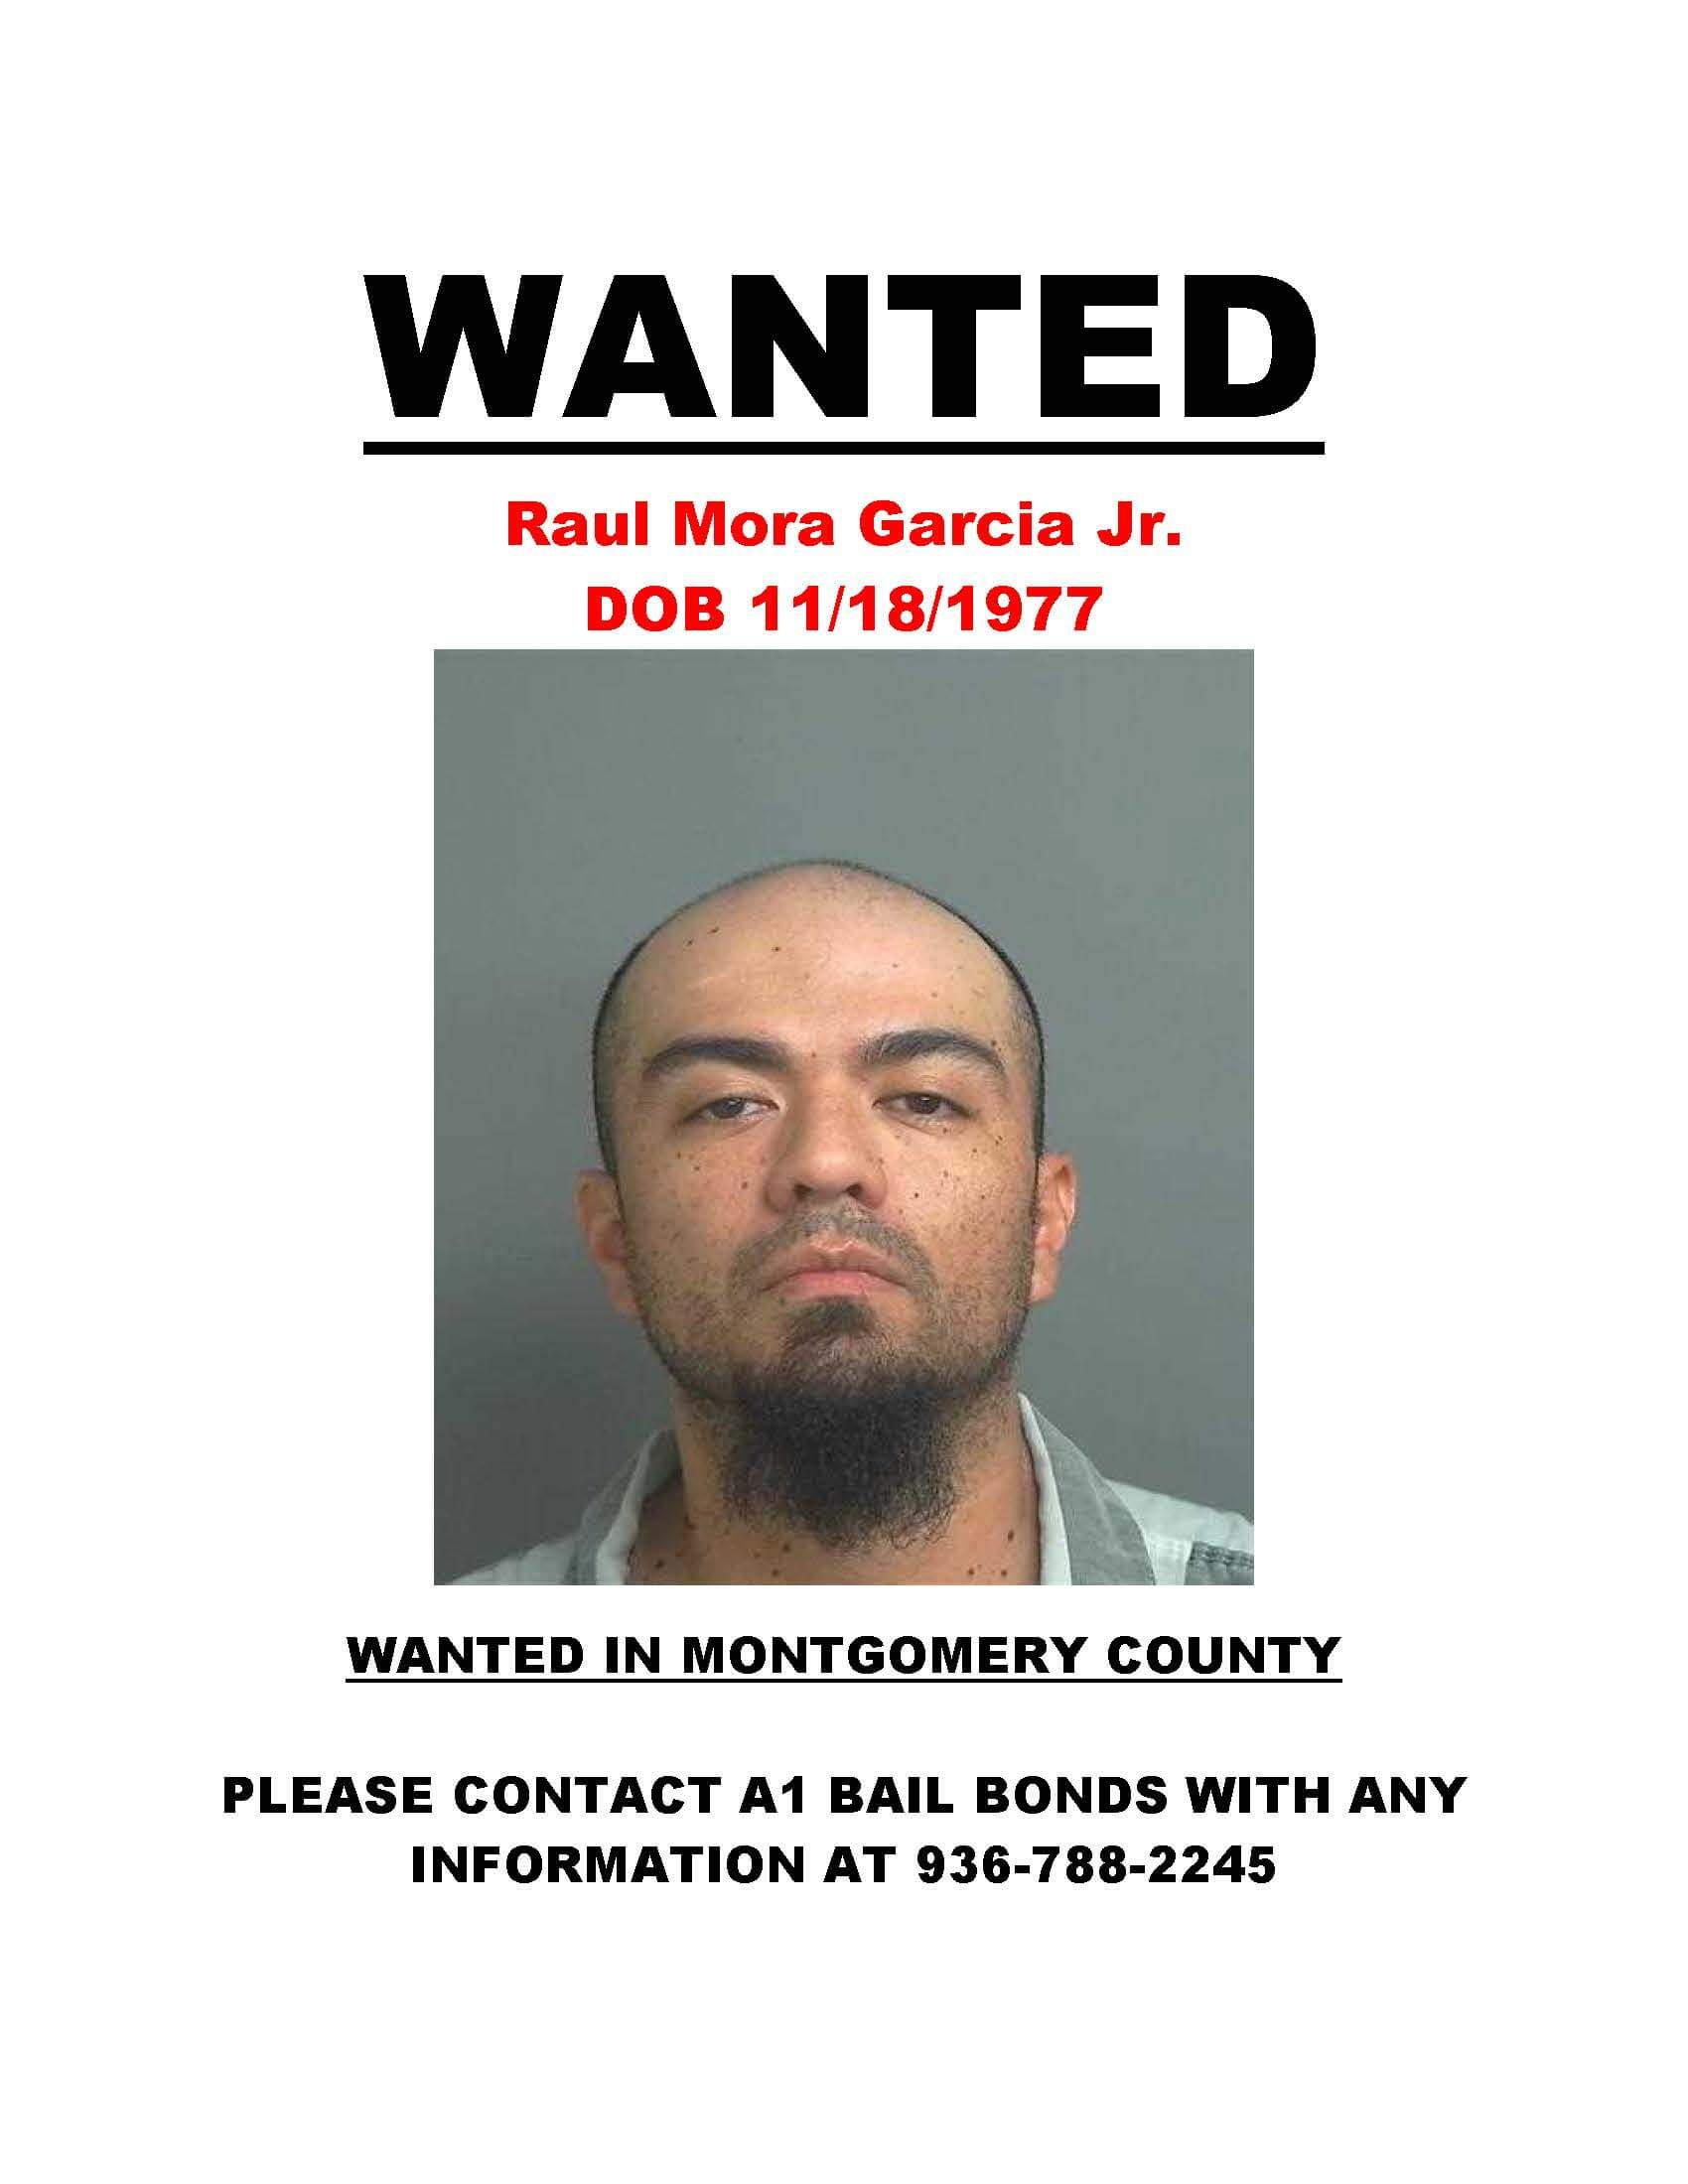 WANTED IN MONTGOMERY COUNTY